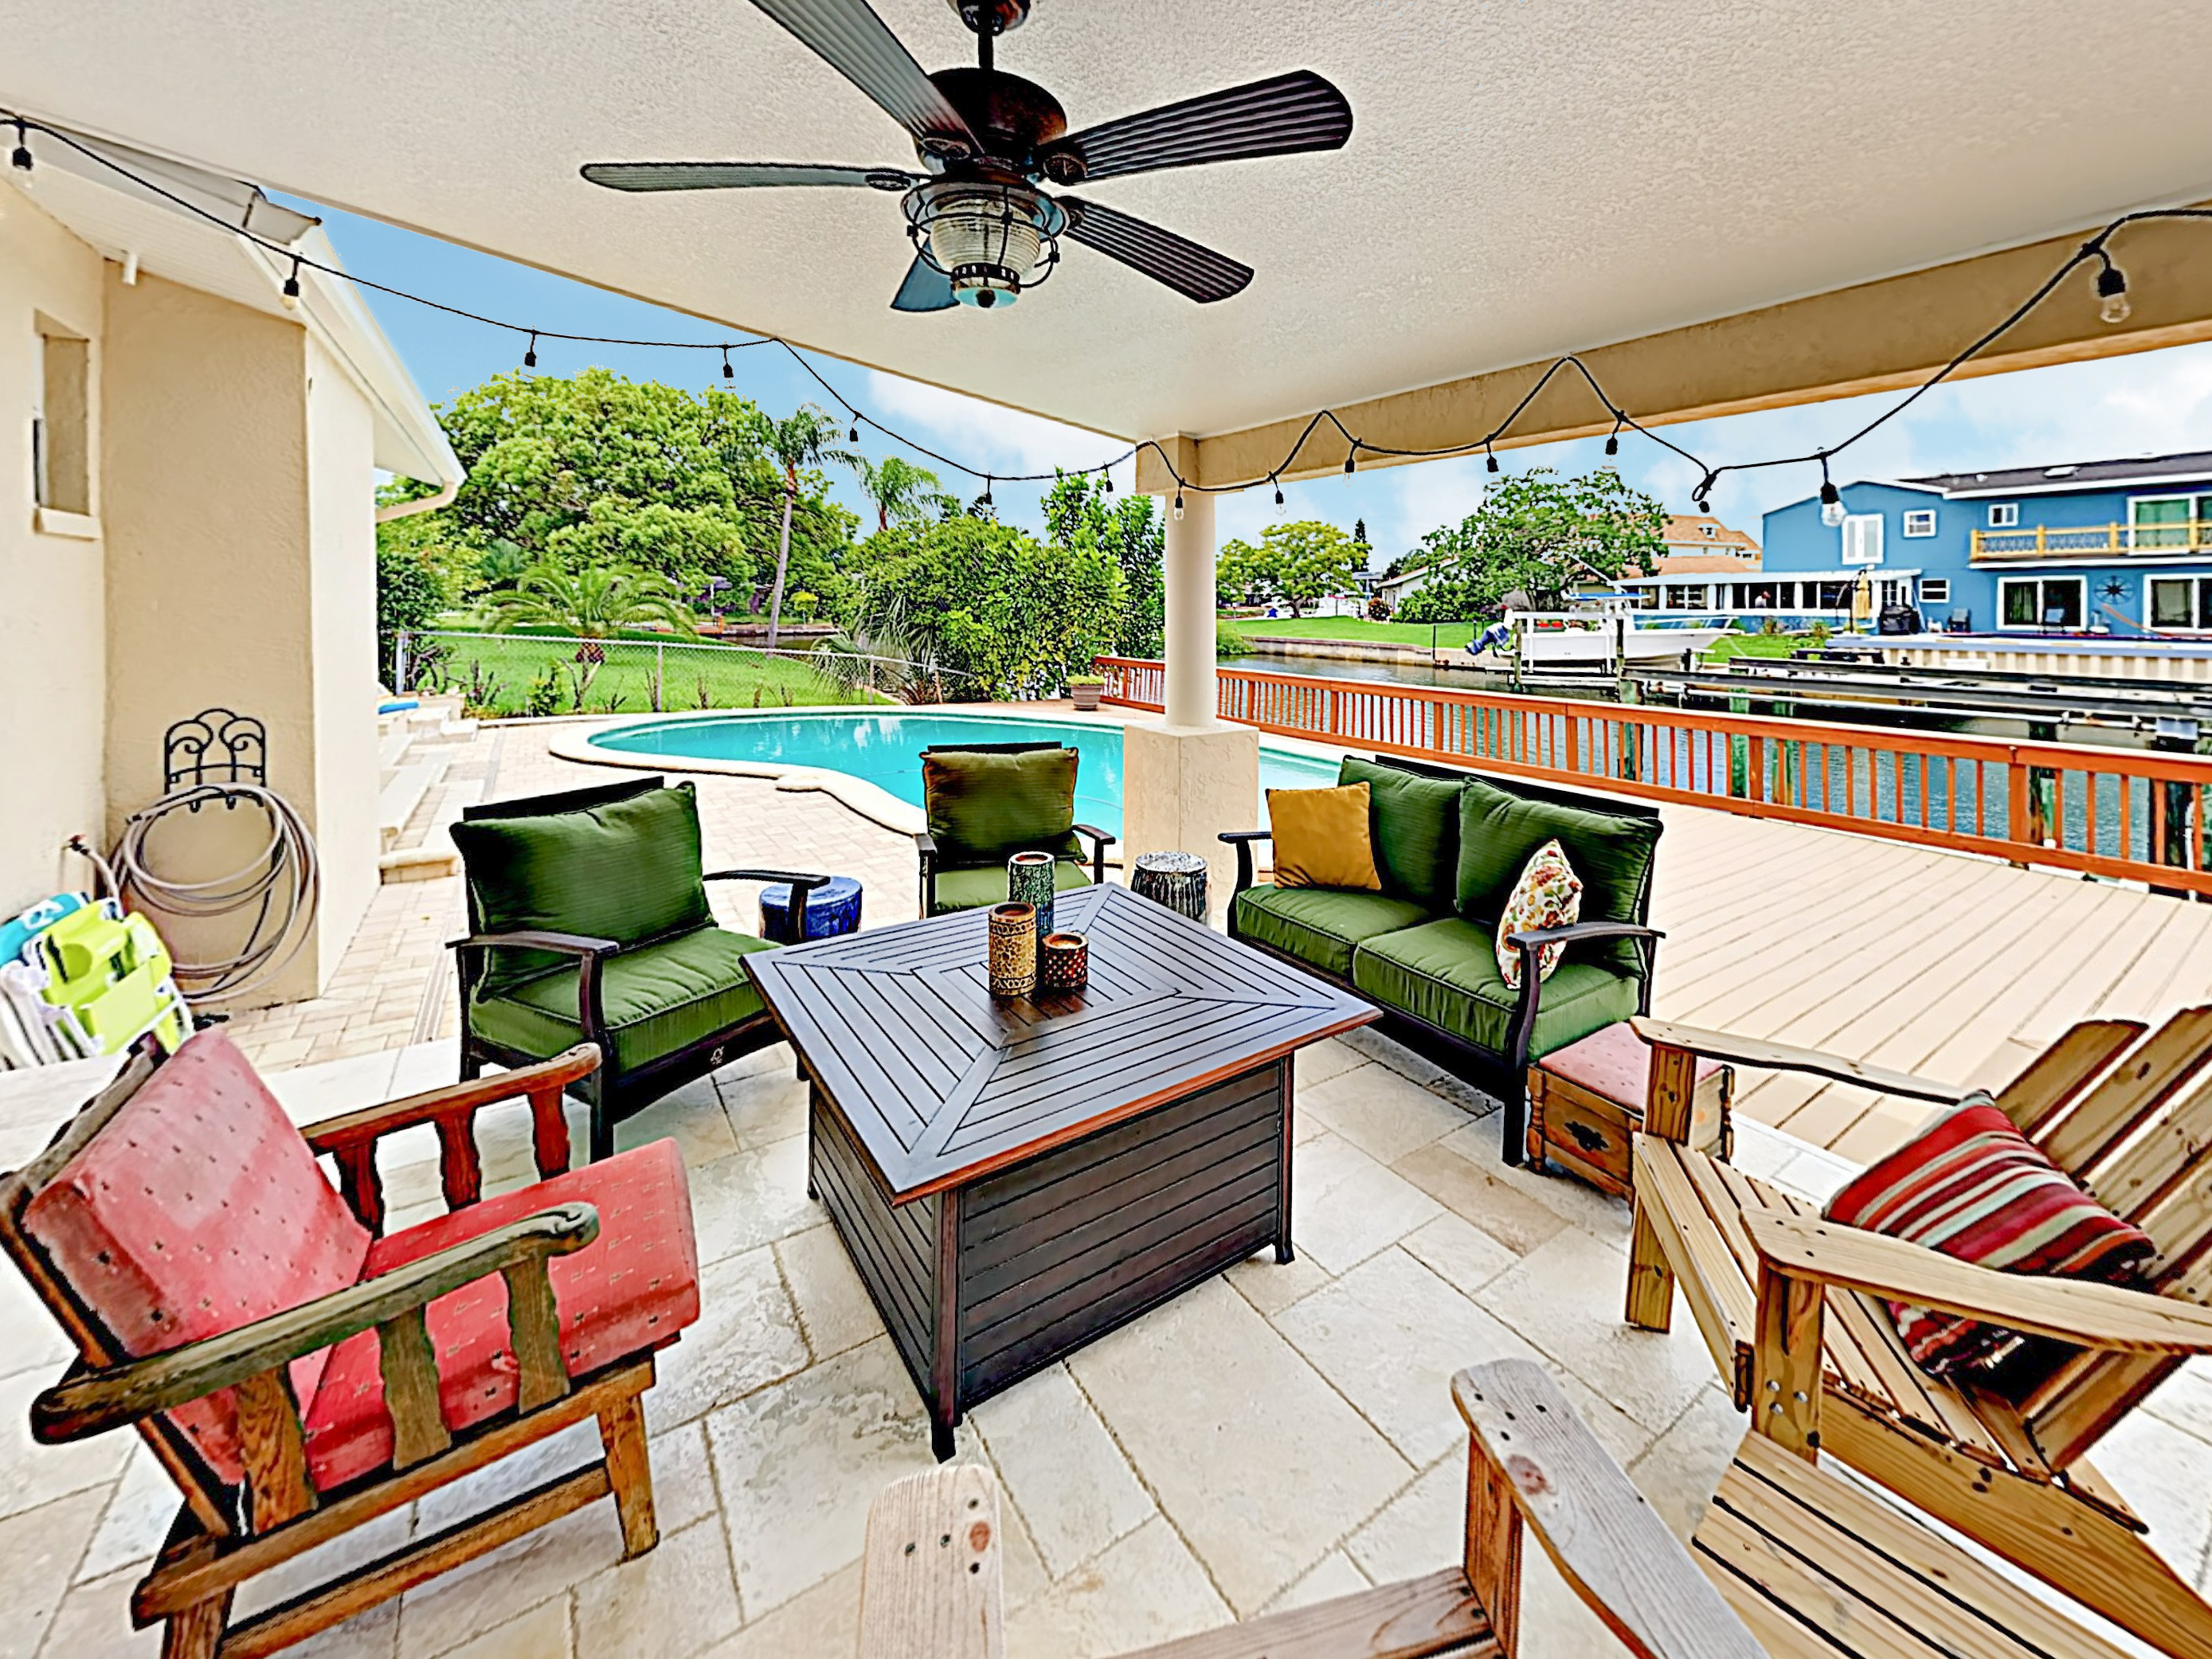 Tampa FL Vacation Rental Welcome to Tampa!